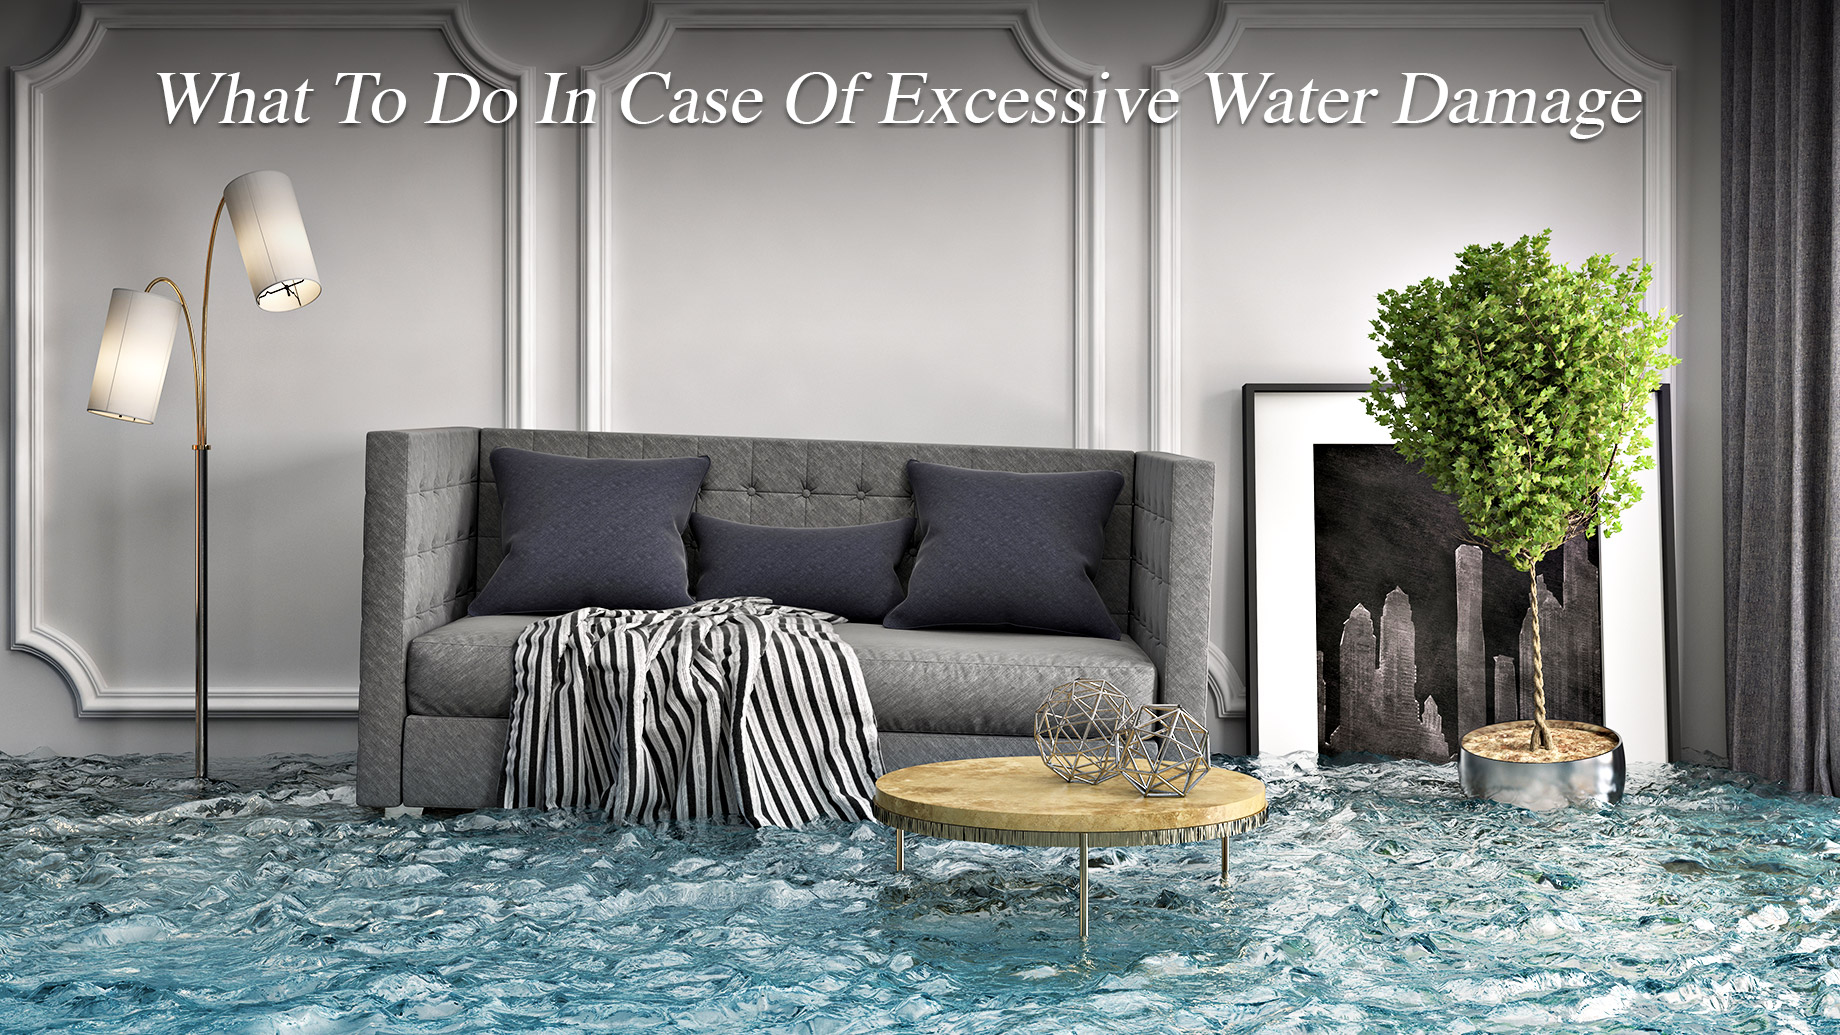 What To Do In Case Of Excessive Water Damage